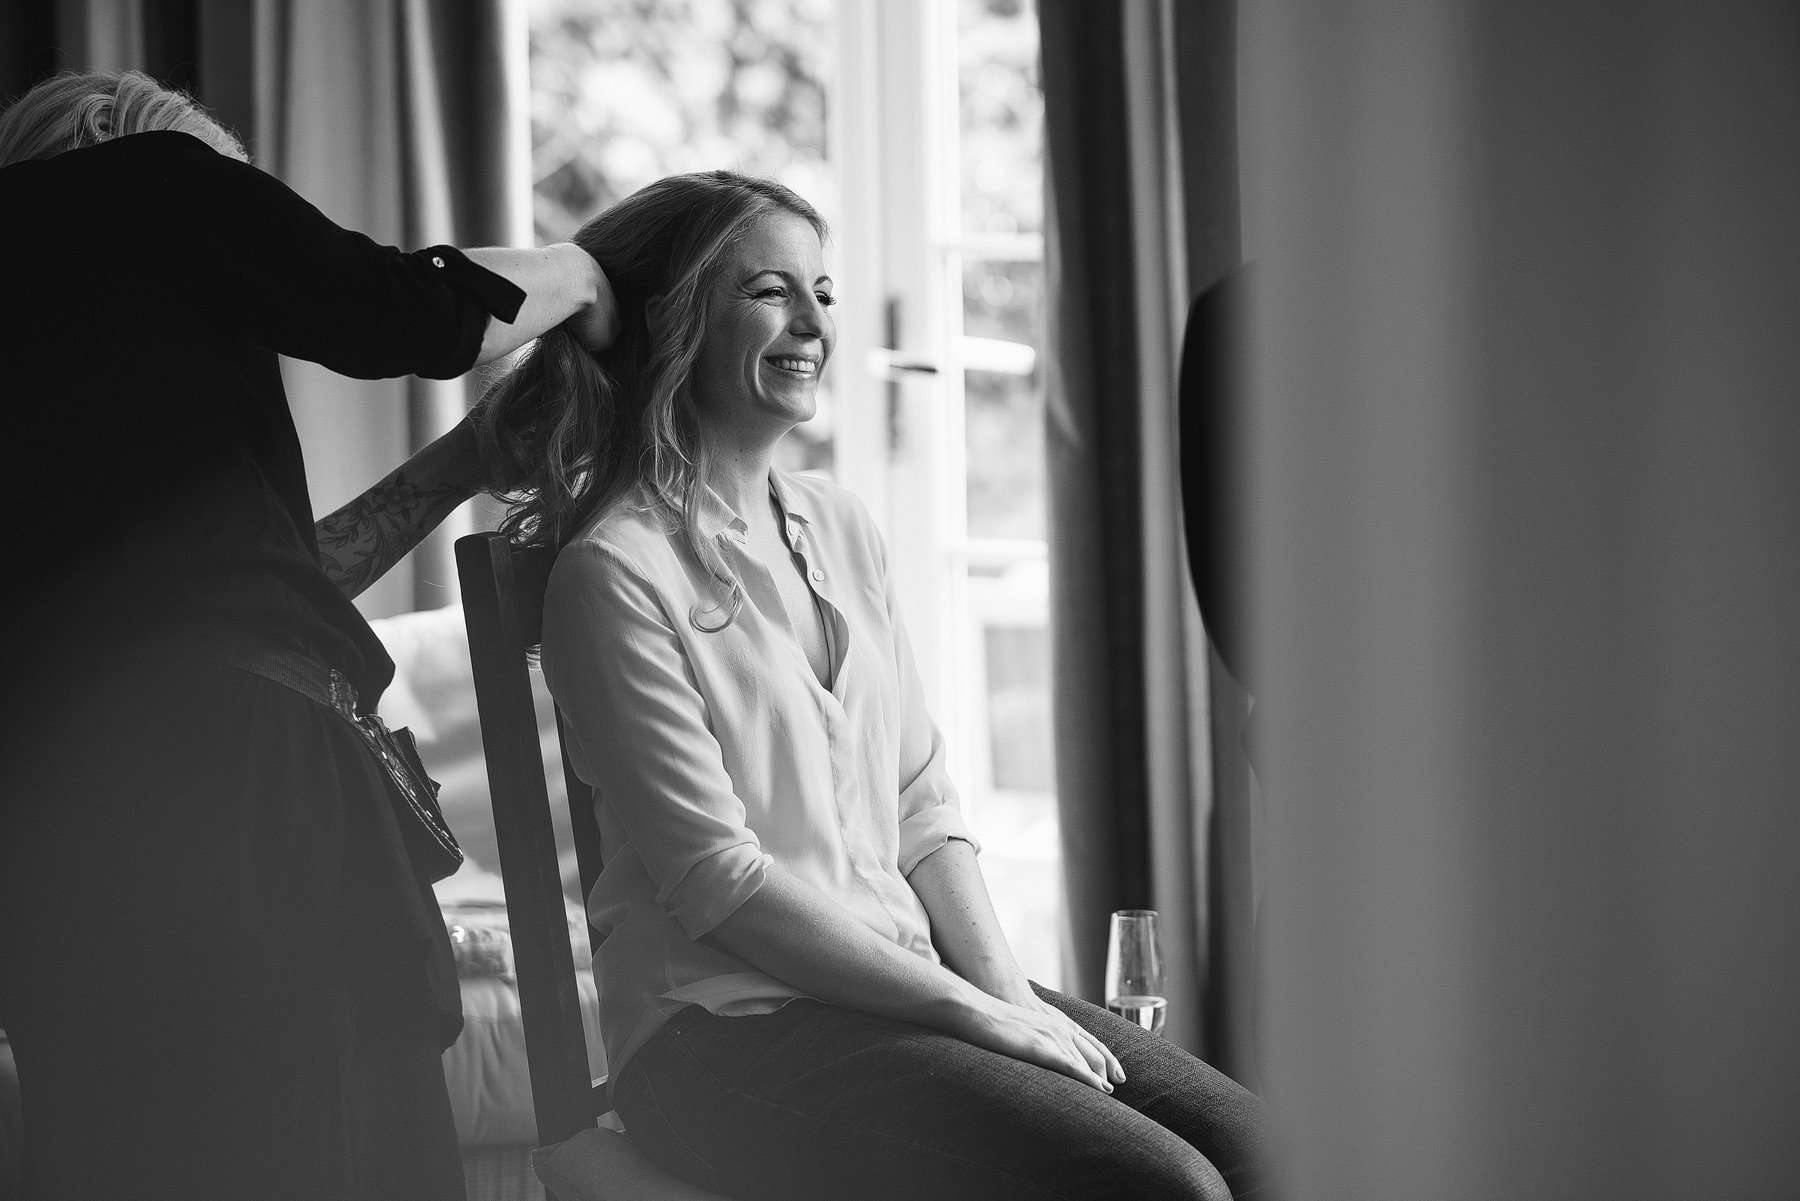 bride smiling while getting ready for her wedding